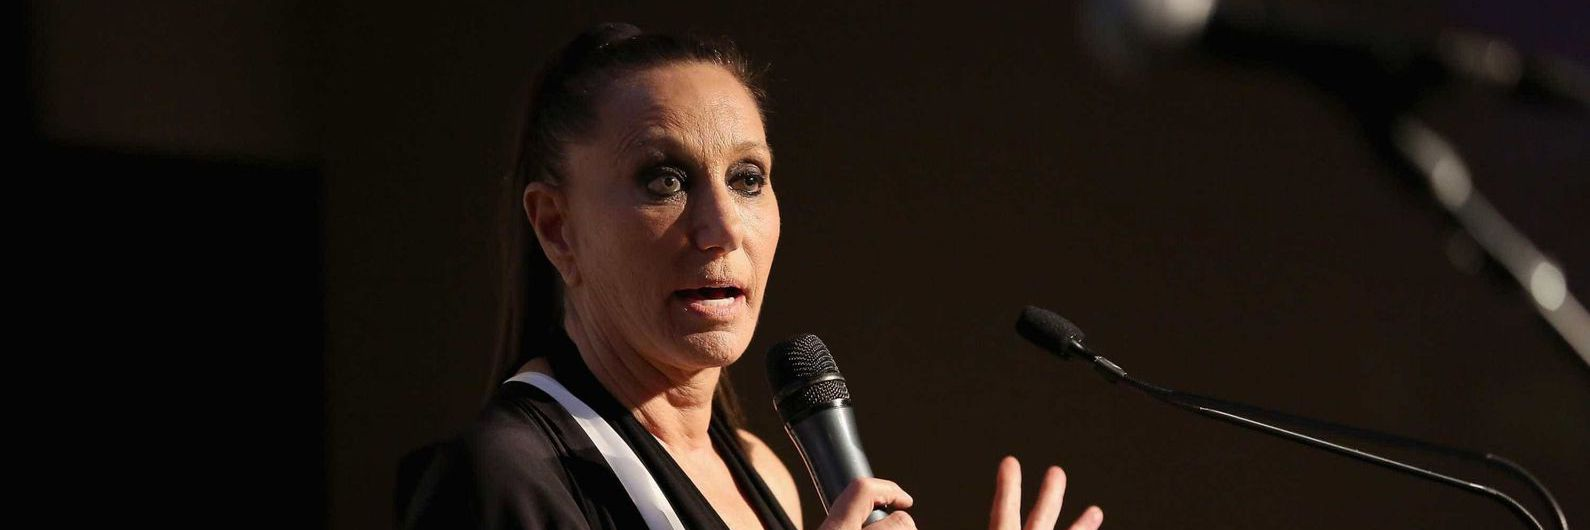 Escândalo sexual: Donna Karan pede perdão após defender Harvey Weinstein